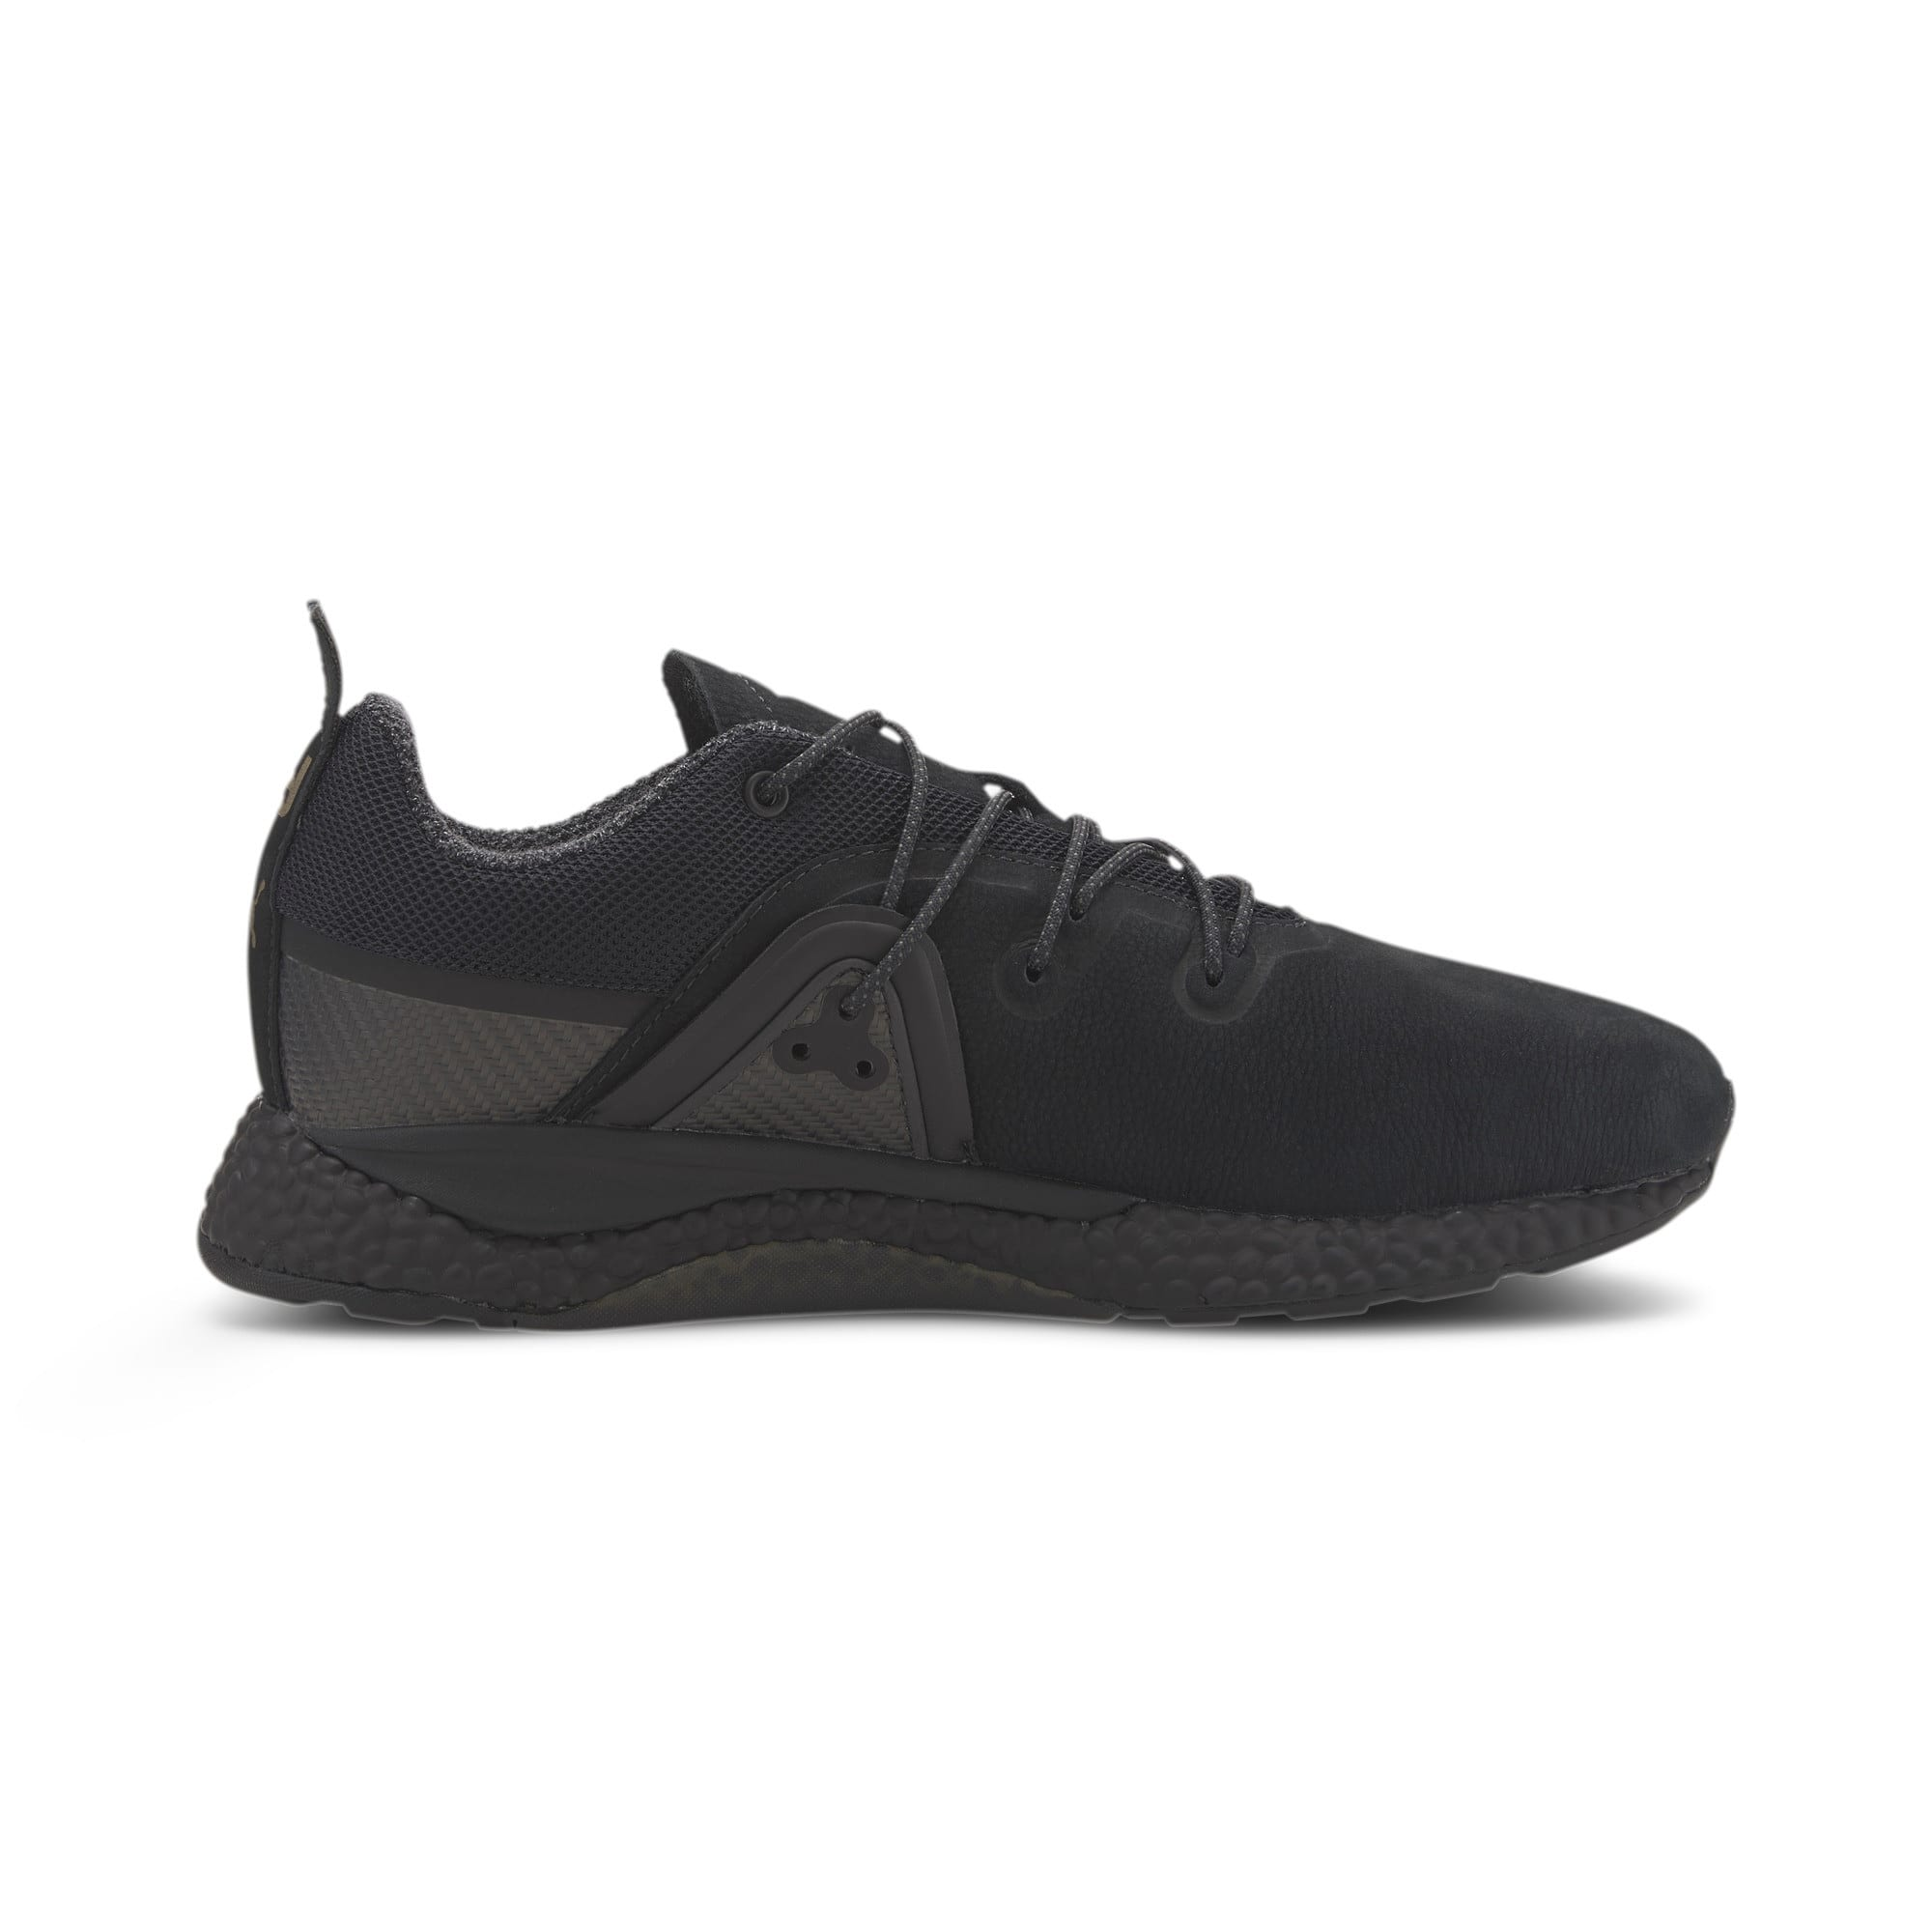 Thumbnail 6 of Porsche Design HYBRID Runner Men's Trainers, Jet Black-Jet Black, medium